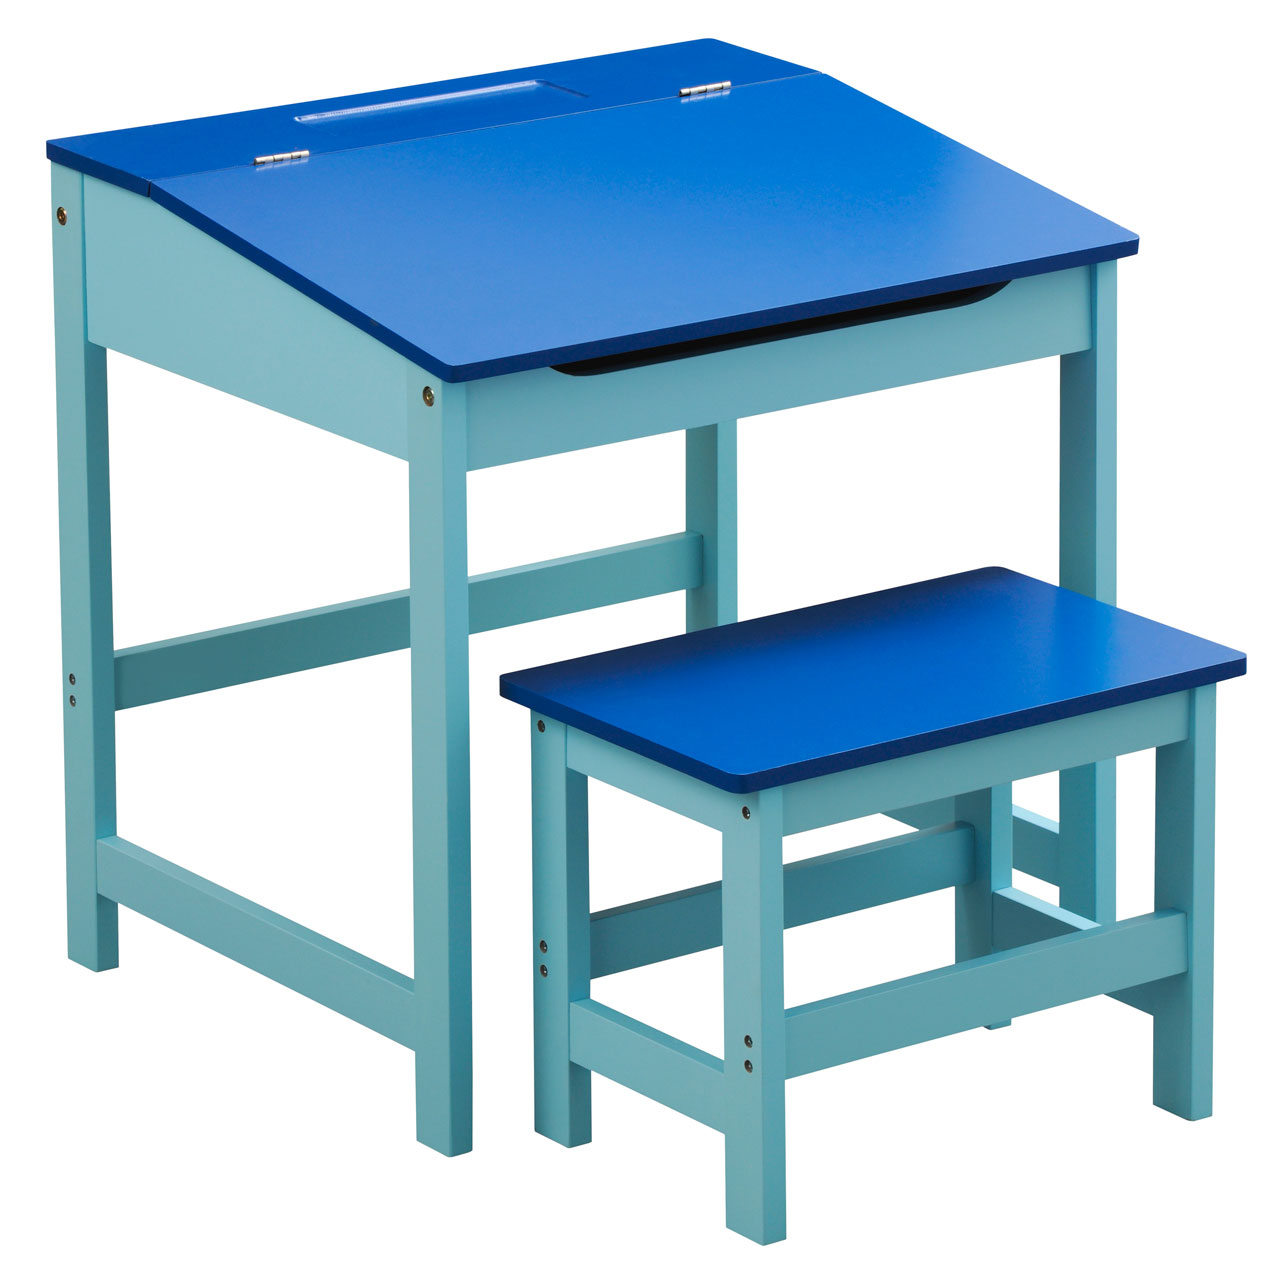 children s blue wooden desk stool hinged lid storage organizing